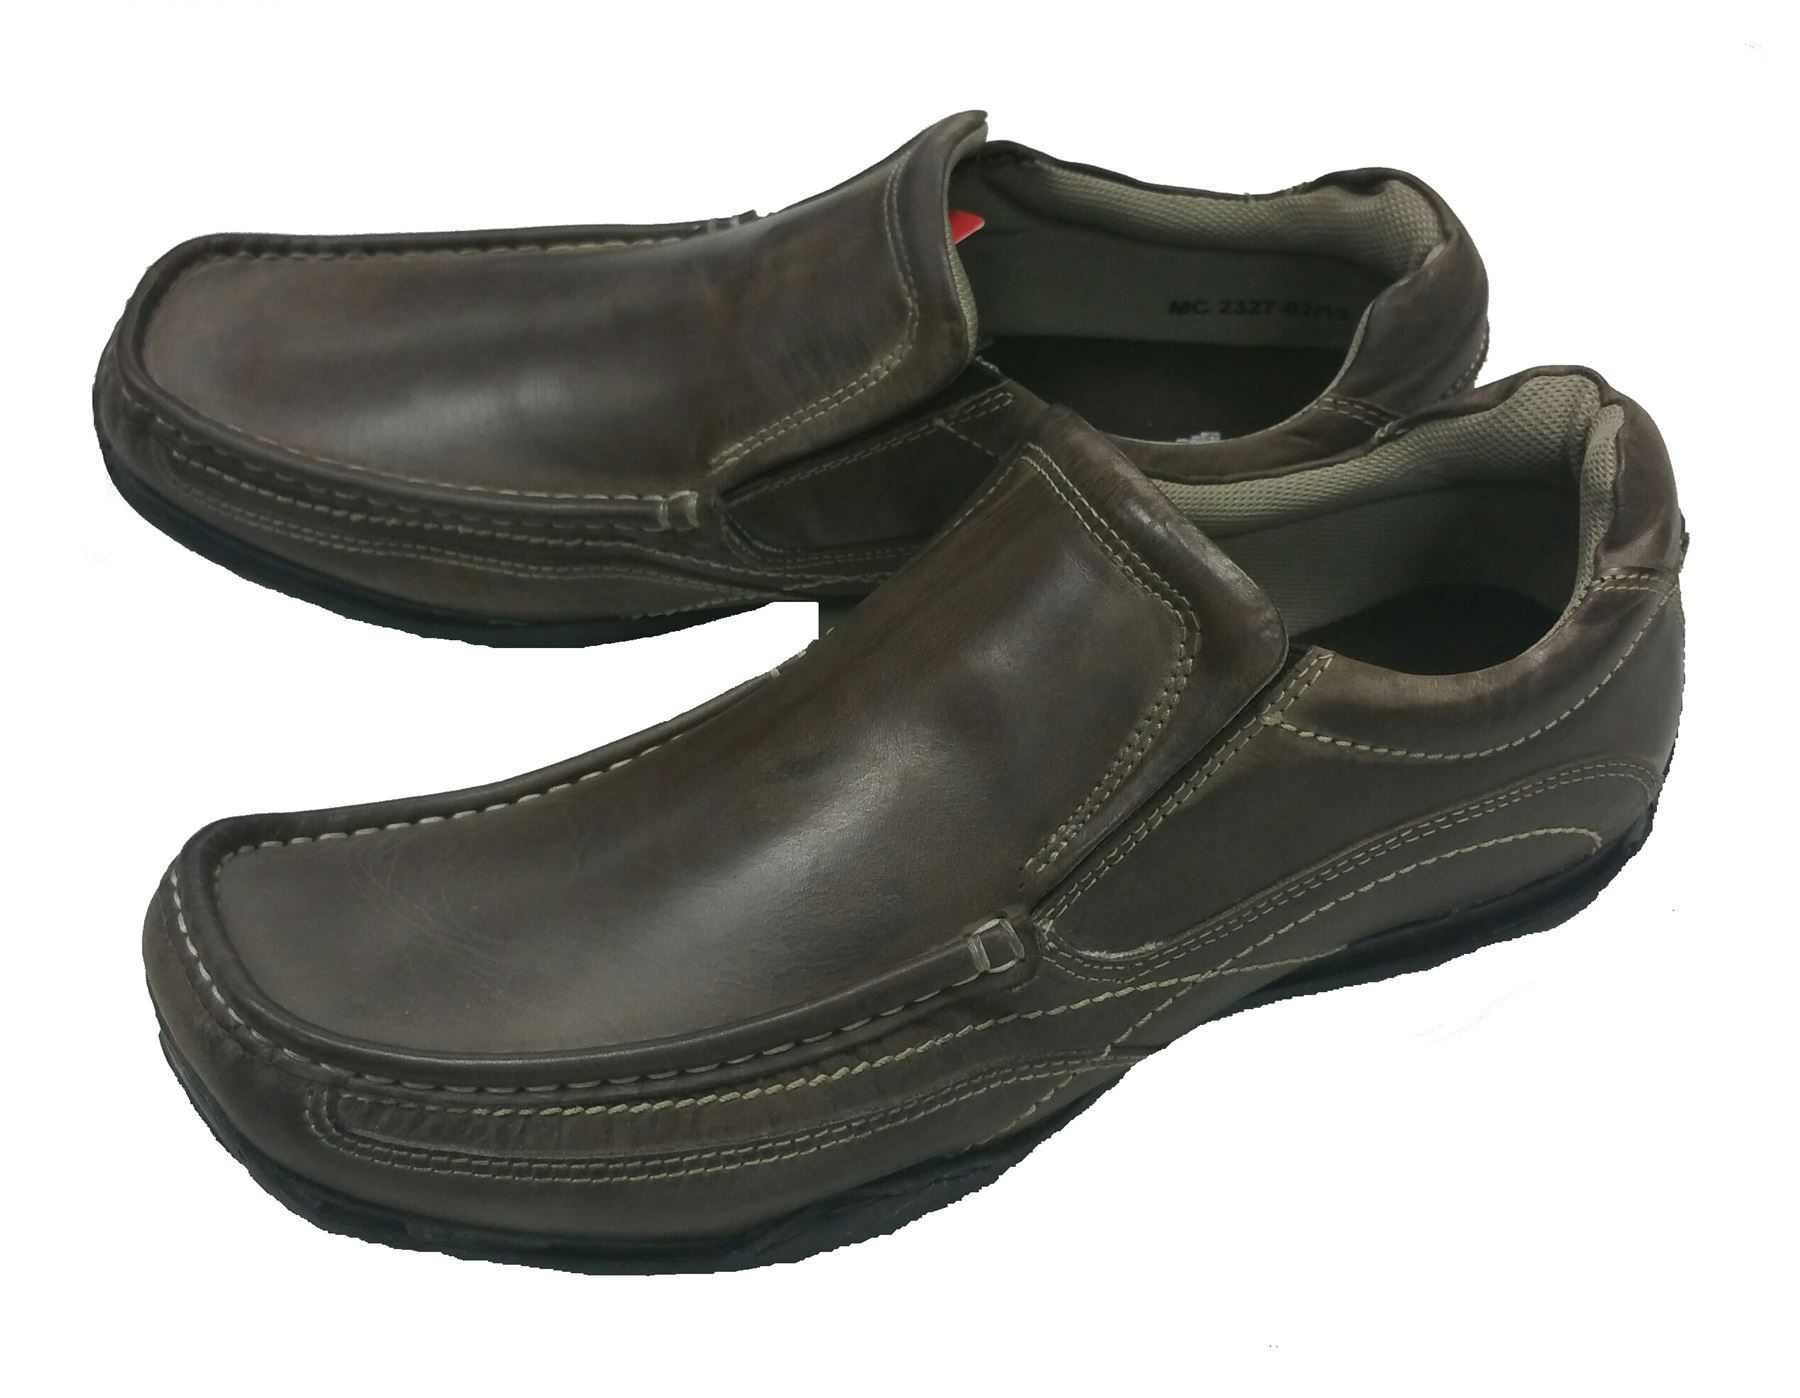 d90380fb2e36 Mens Suede Loafers In Wide Width